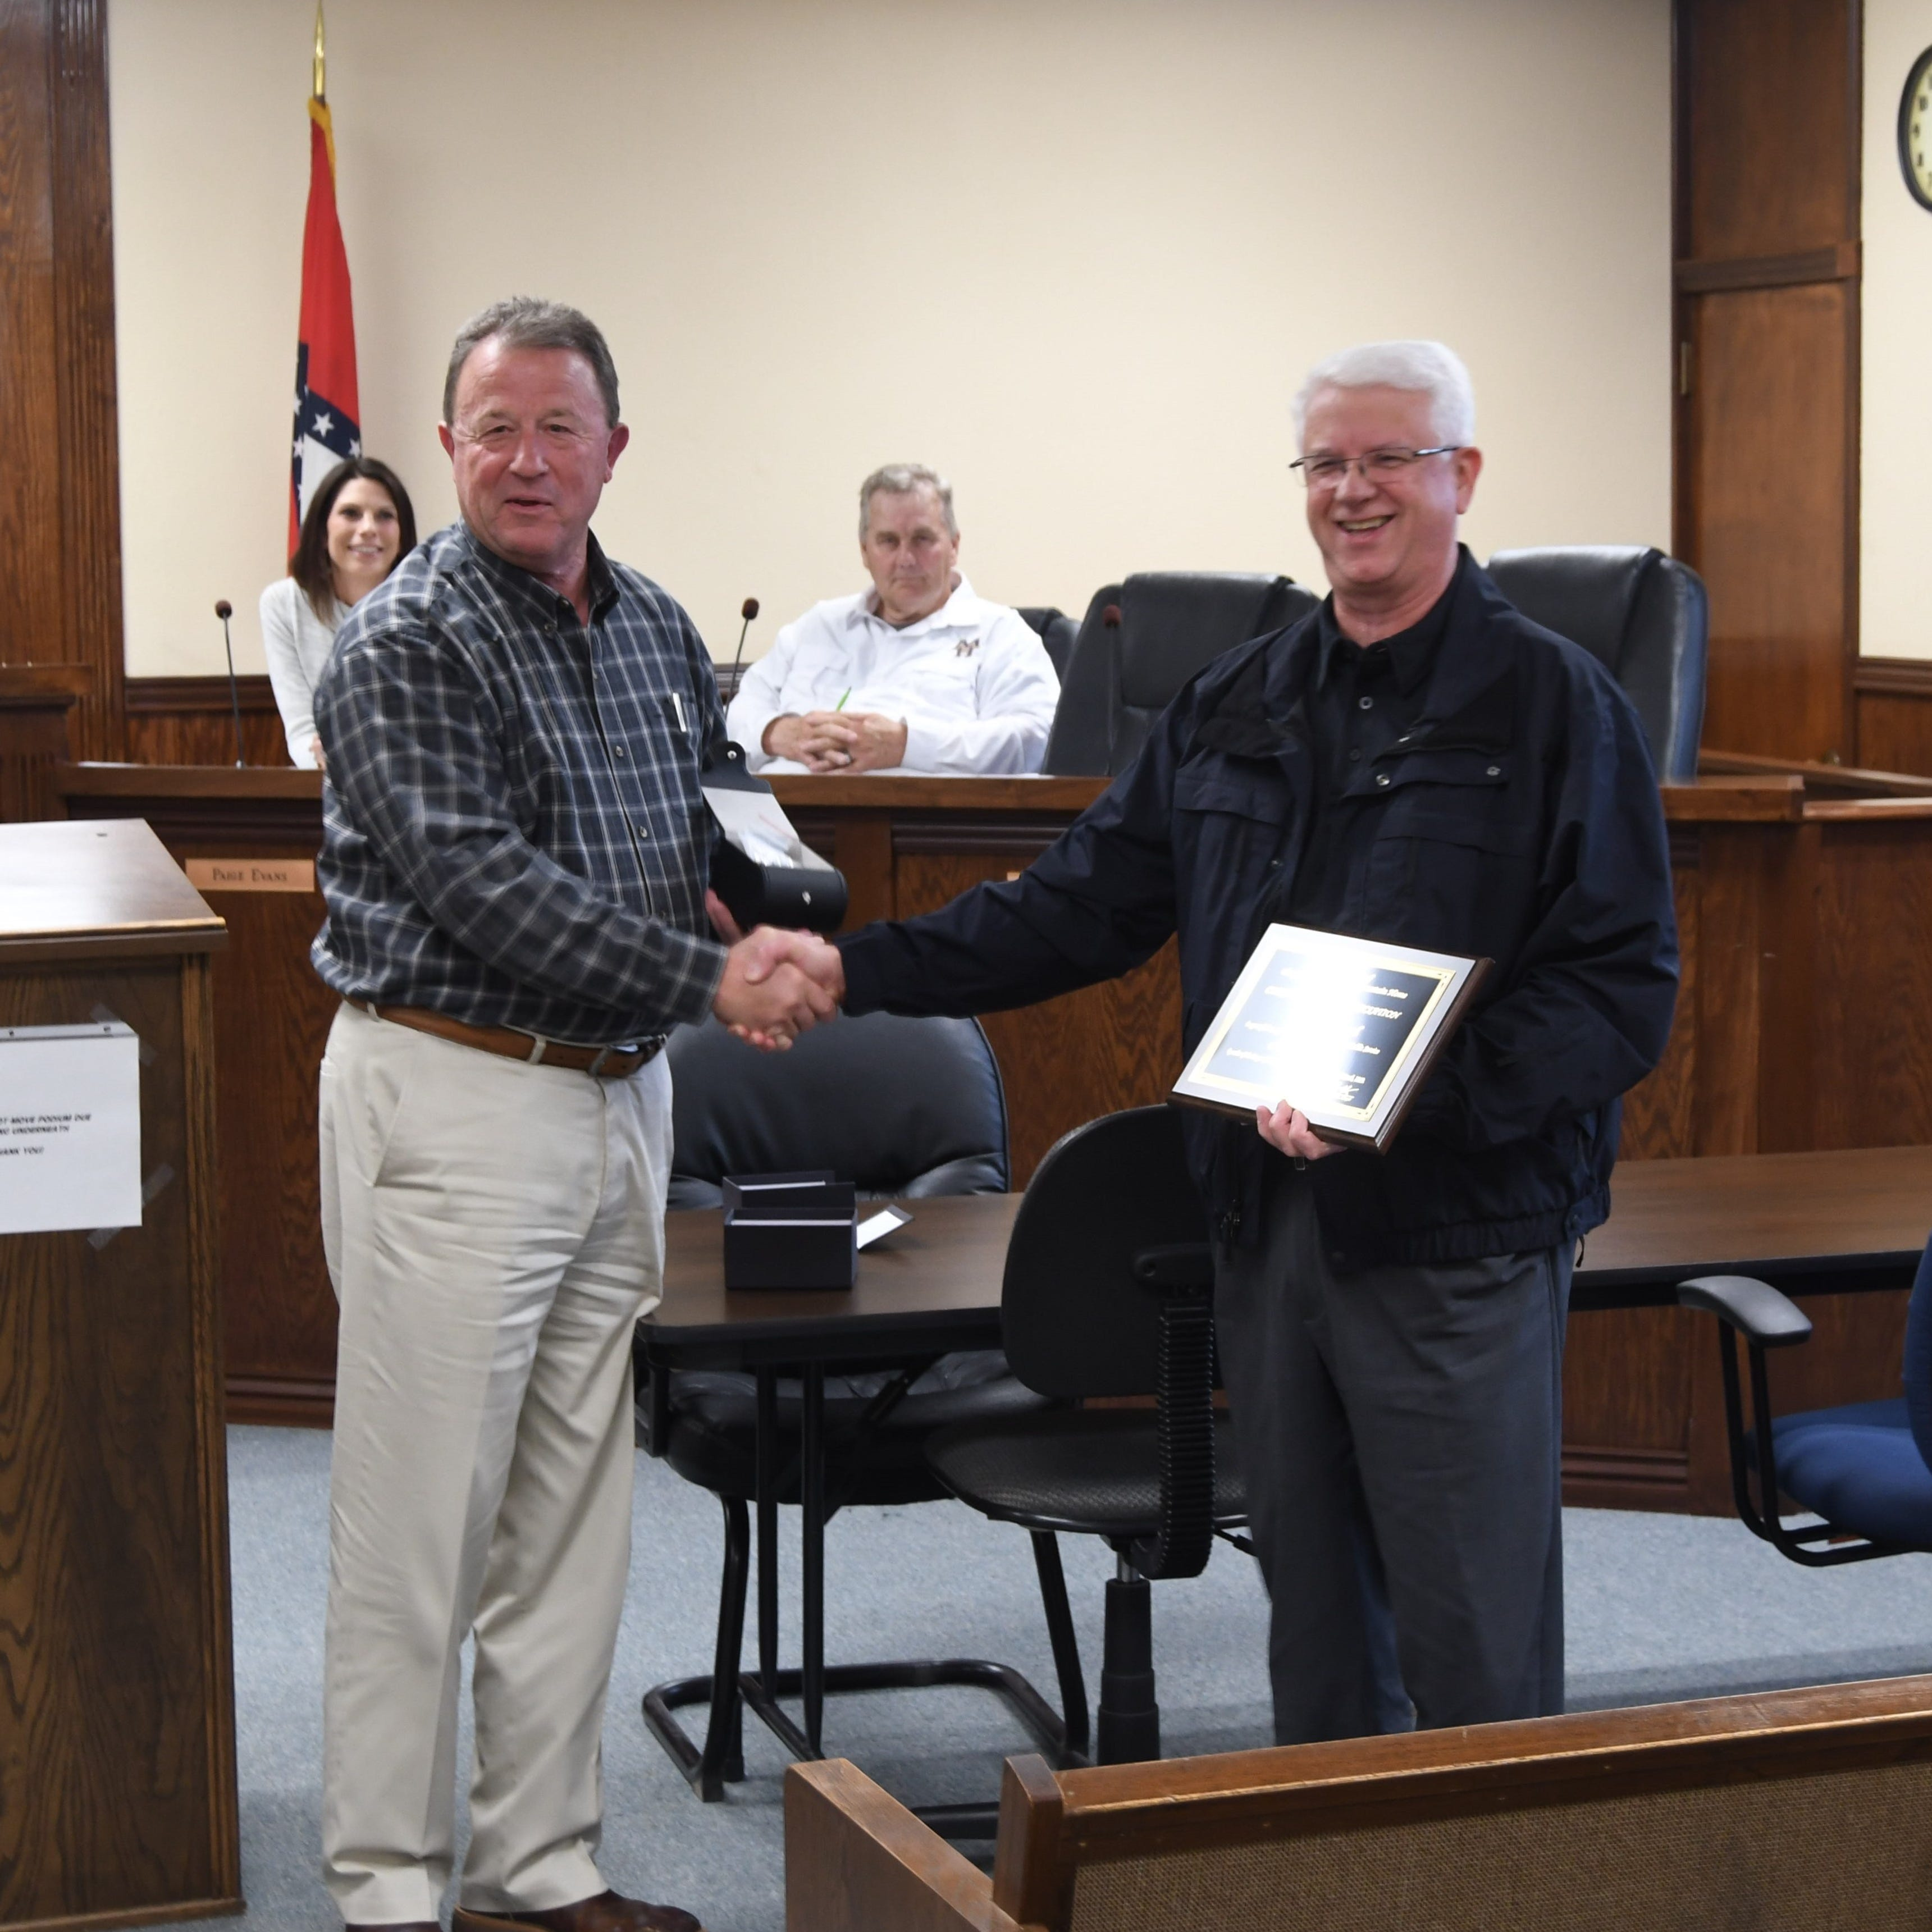 Manuel recognized for 35 years of service